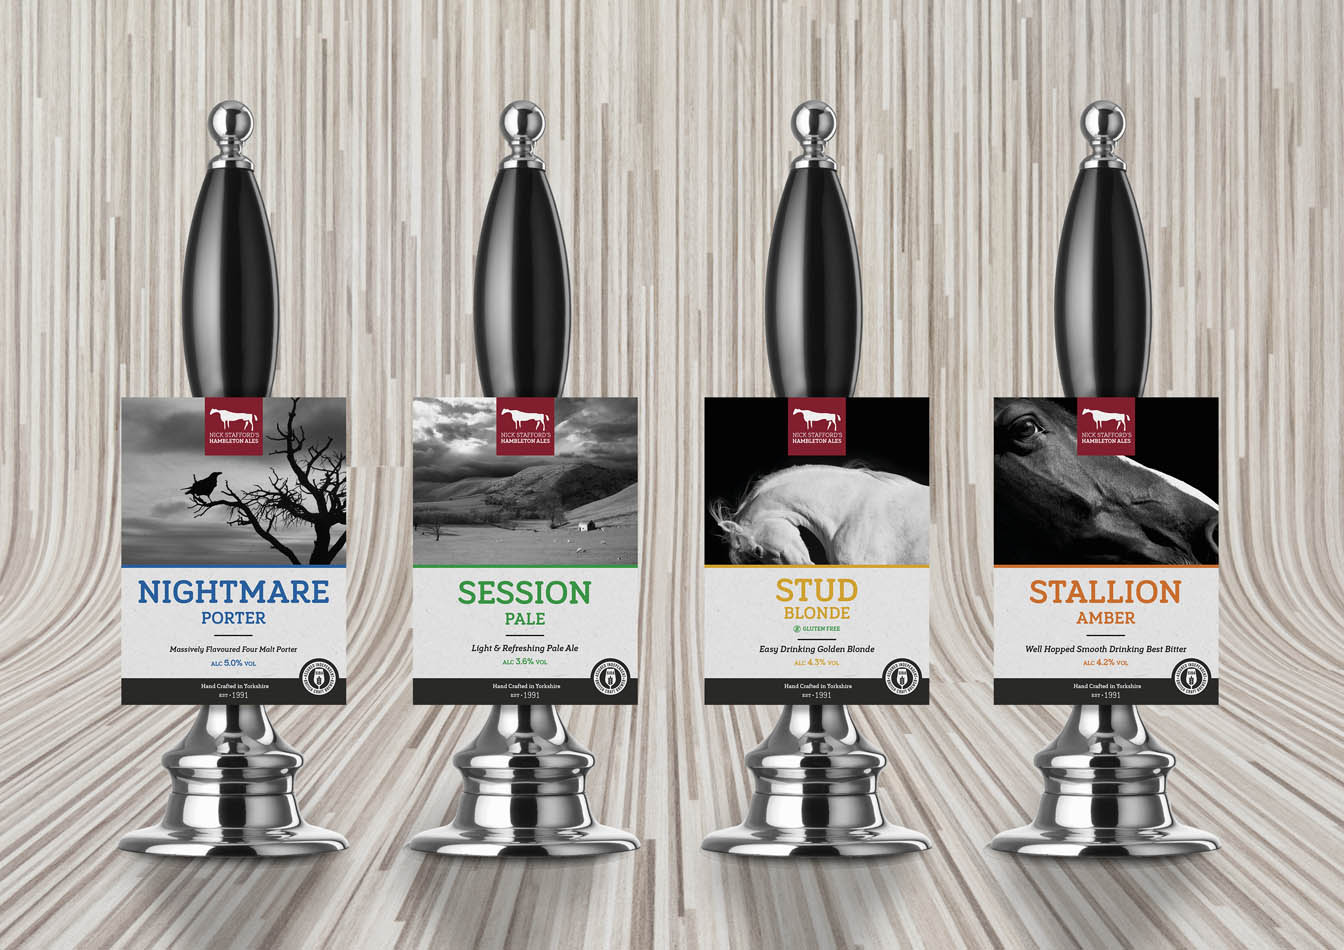 The core range pump clips which feature a traditional but distinctly clean and contemporary design.